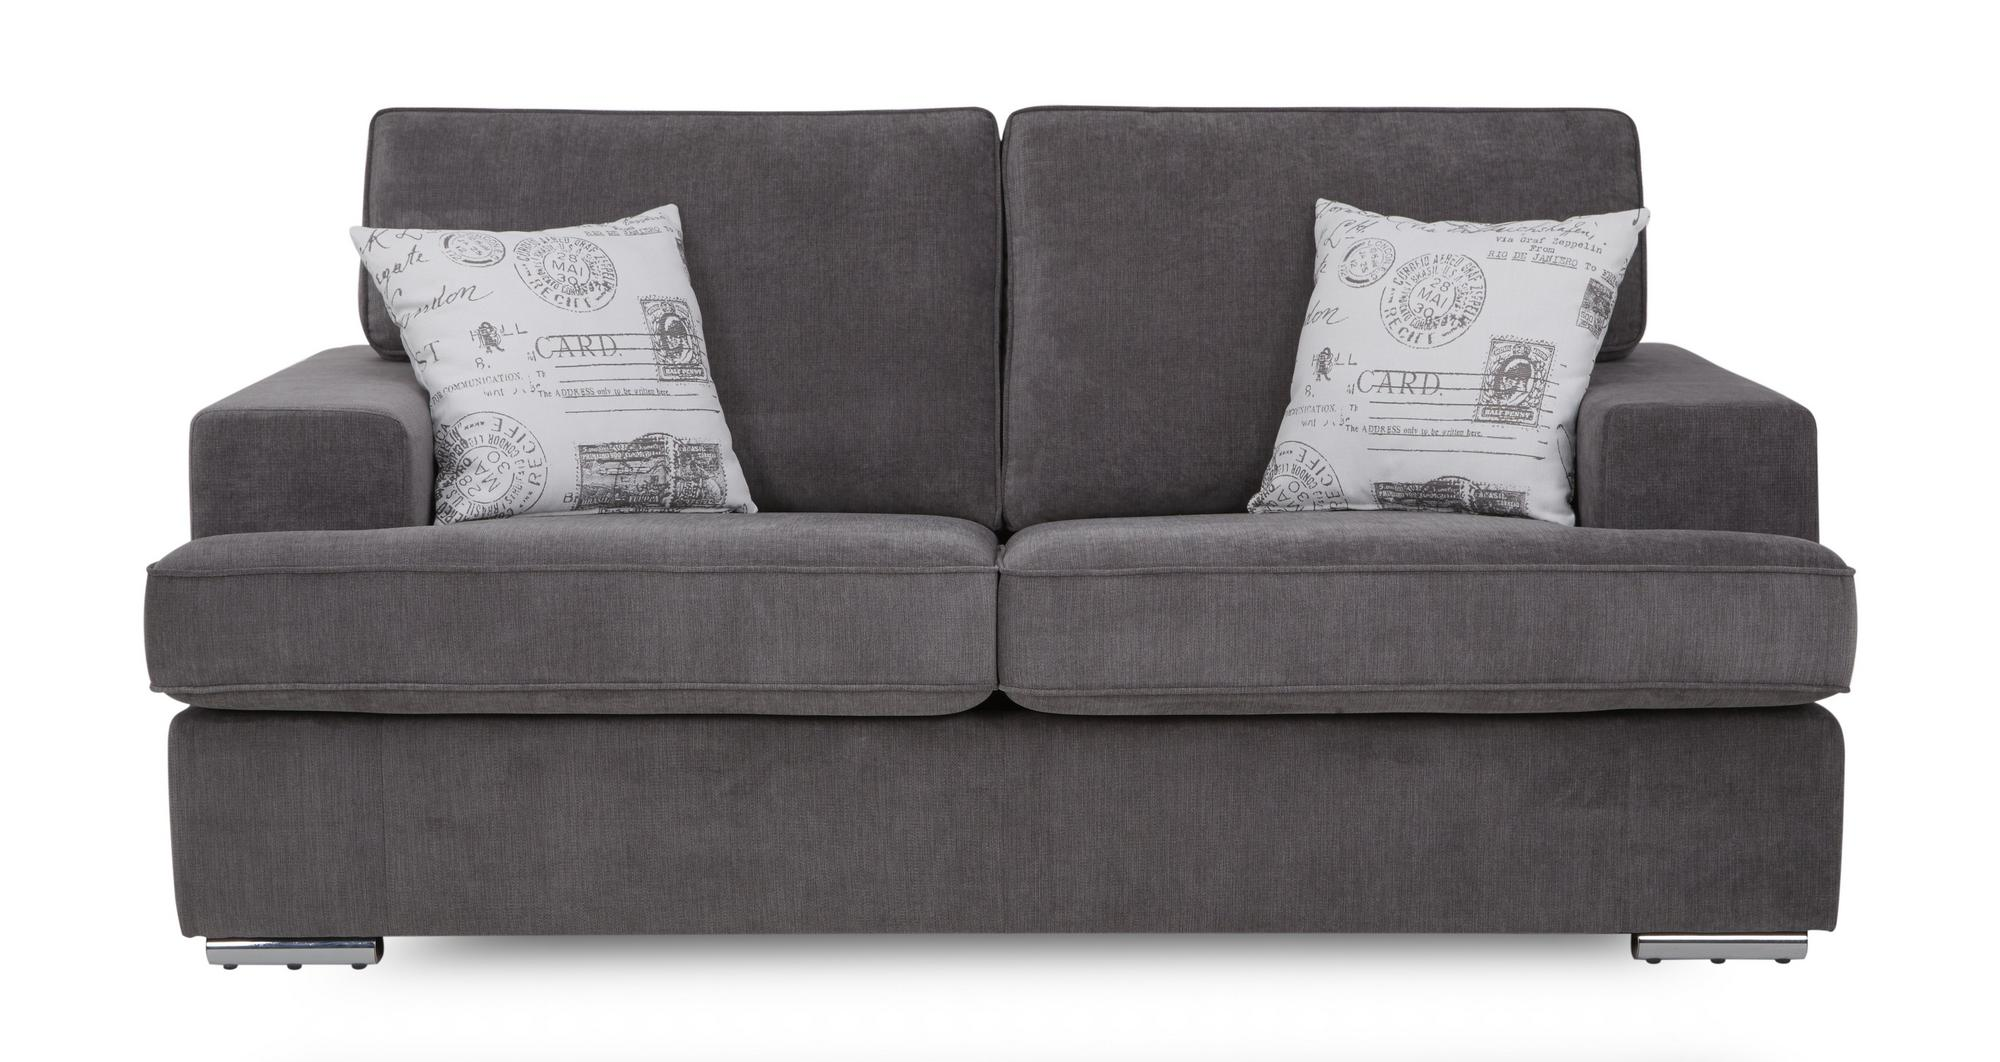 Dfs Merit Graphite Grey Fabric 2 Seater Sofa Bed Ebay